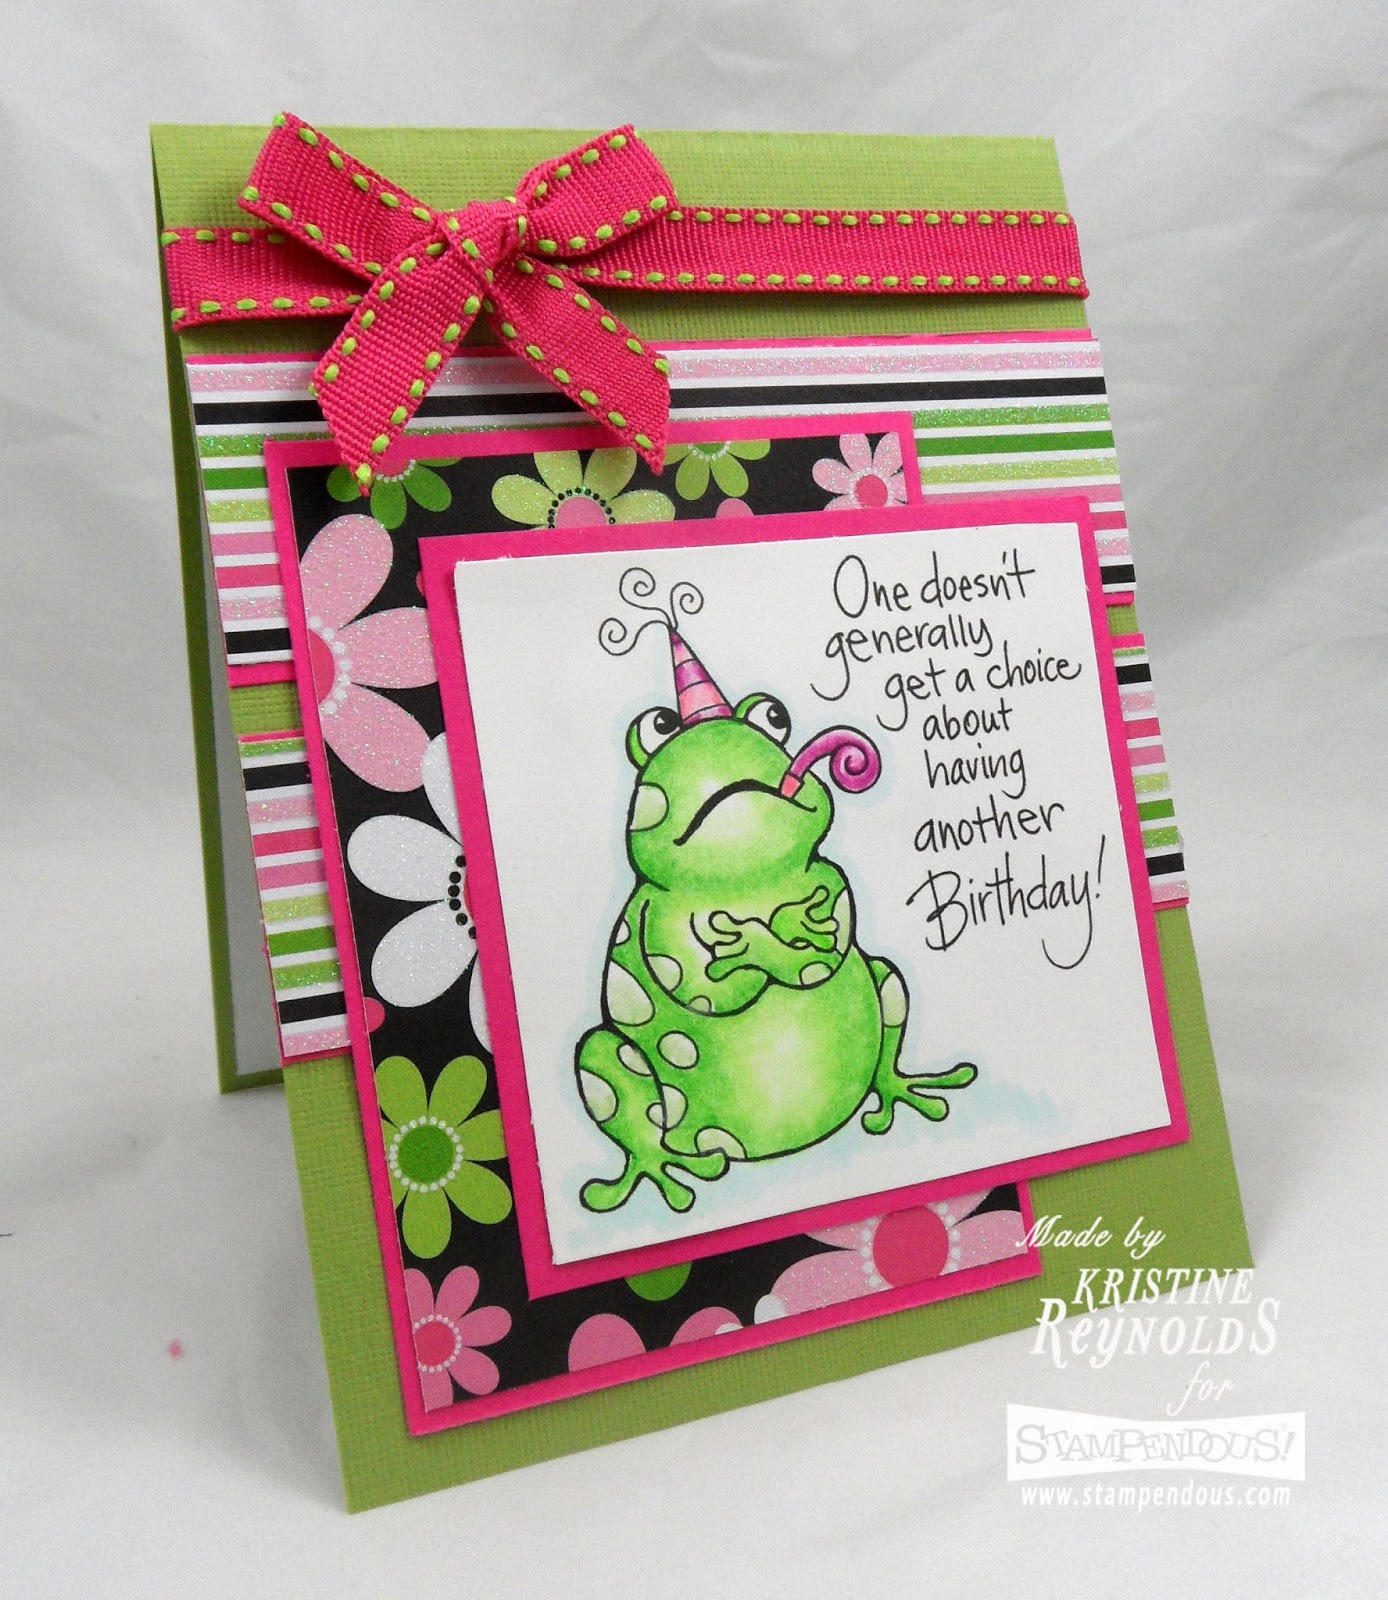 Stamping & Scrapping In California: Happy Birthday Janelle